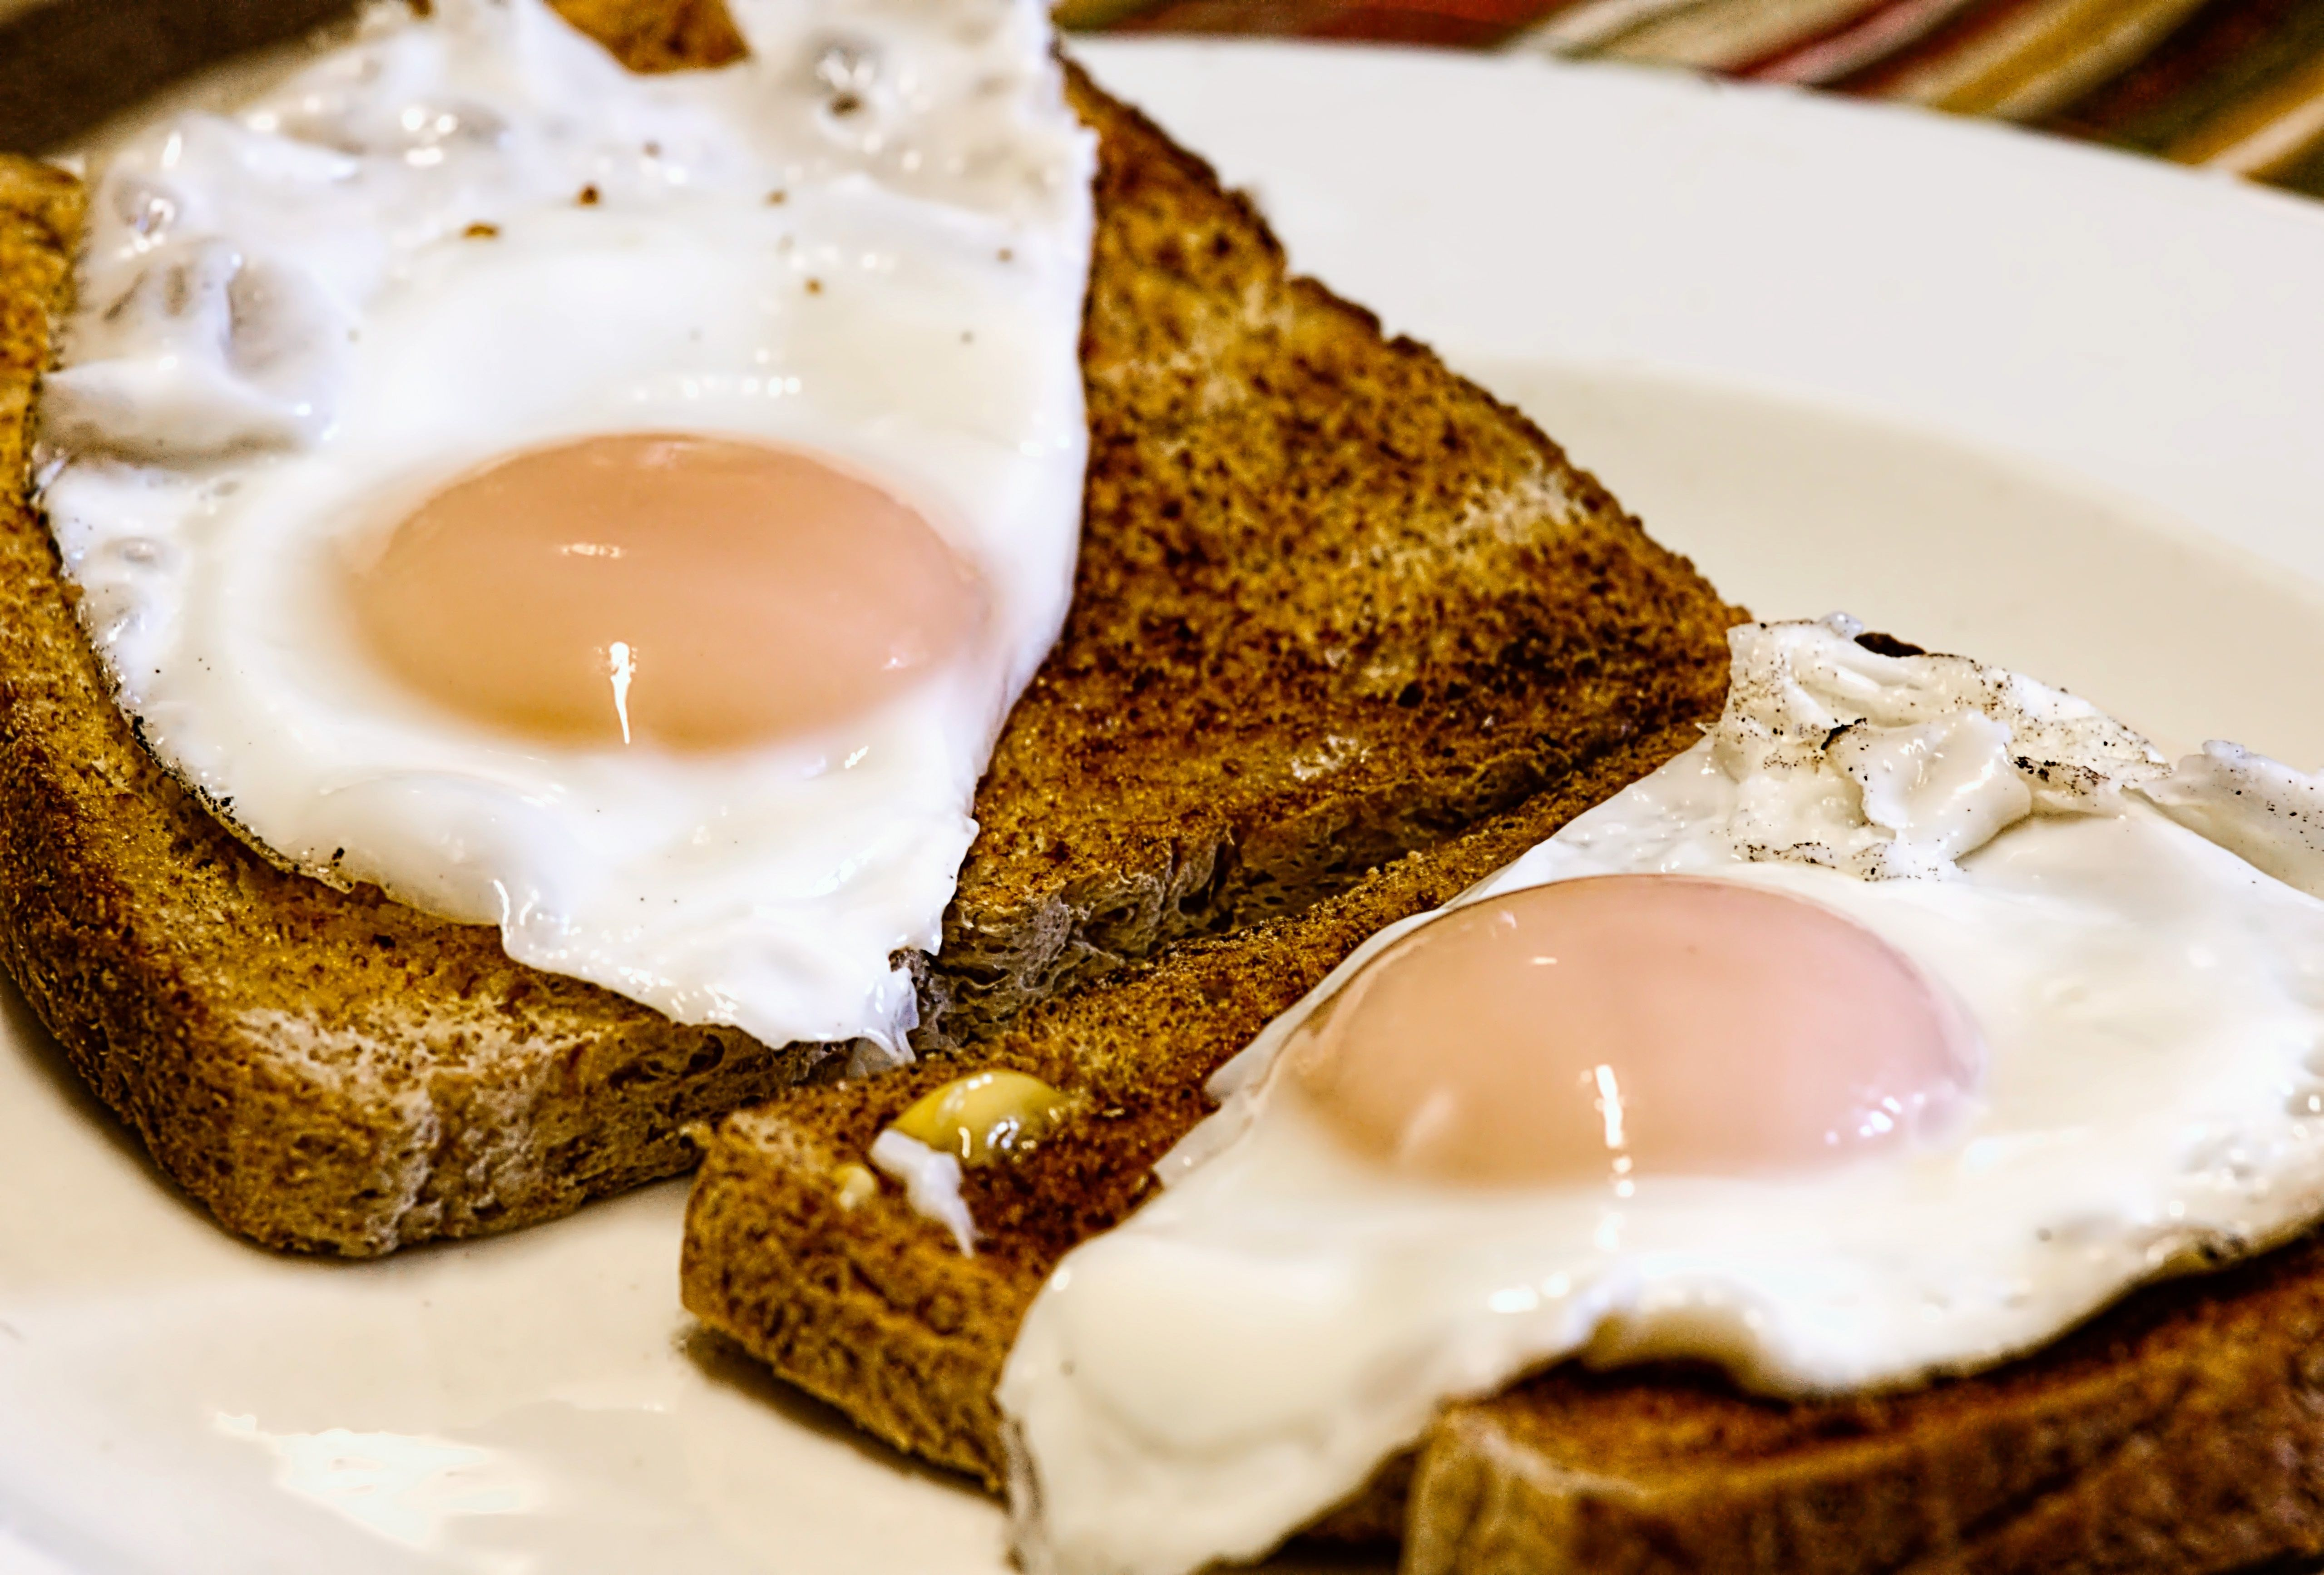 Two sunny side up eggs on pieces of toast